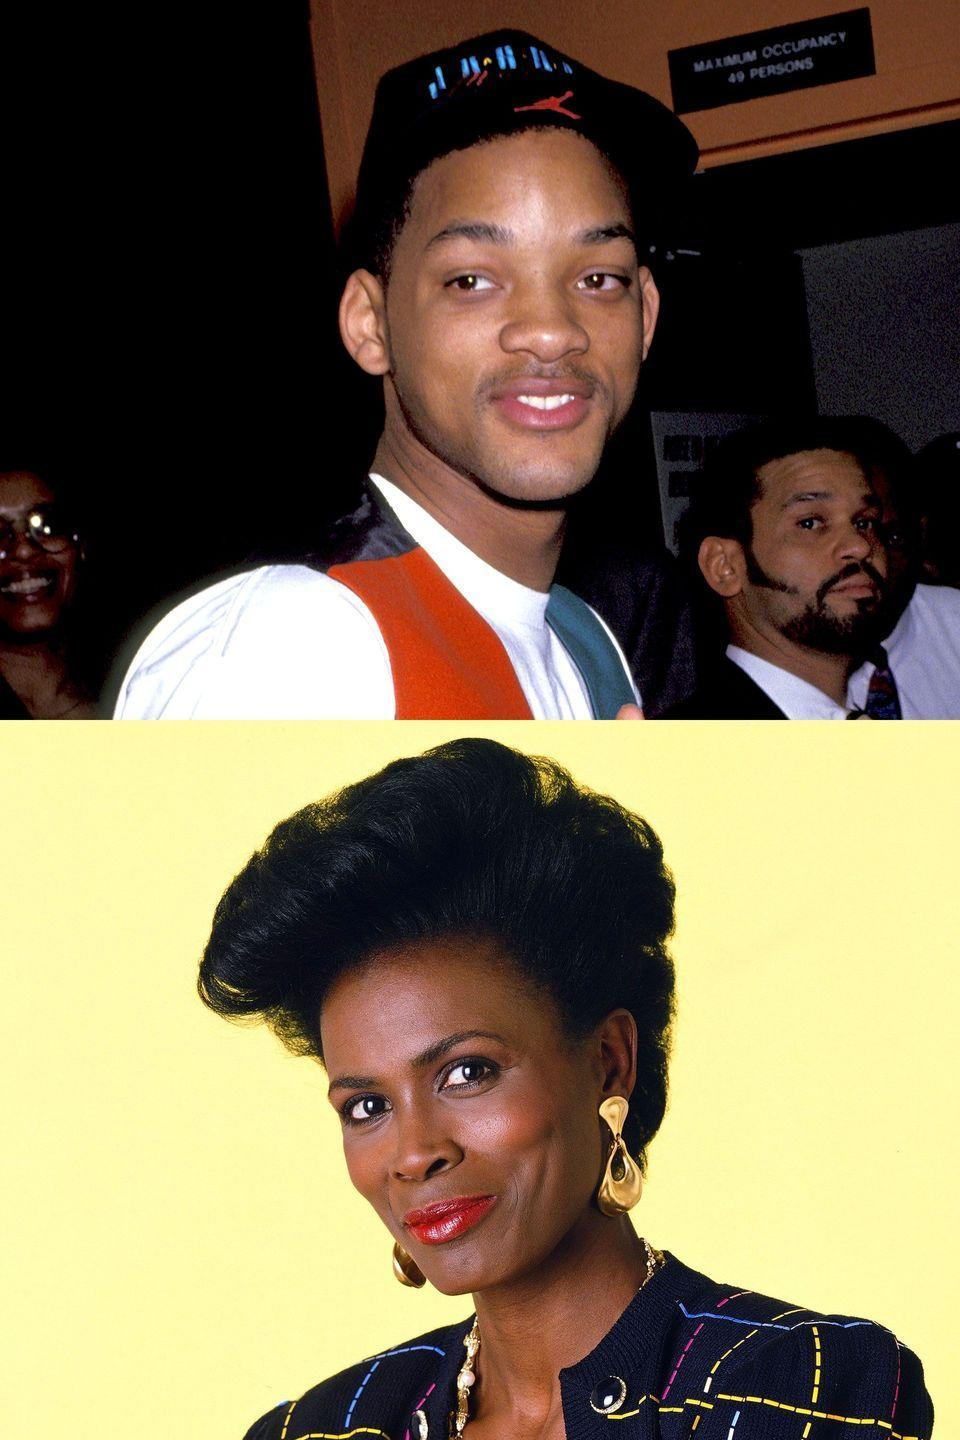 "<p>Now this is a story all about how…Aunt Viv's life got flipped-turned upside down. Janet Hubert starred as the matriarch on <em>The Fresh Prince of Bel-Air </em>for three seasons but was suddenly fired in 1993 and replaced with Daphne Maxwell Reid. Smith addressed the exit in <a href=""http://ew.com/tv/2017/03/31/fresh-prince-aunt-viv-slams-costars/"" rel=""nofollow noopener"" target=""_blank"" data-ylk=""slk:a radio interview"" class=""link rapid-noclick-resp"">a radio interview</a>: ""I can say straight up that Janet Hubert wanted the show to be <em>The Aunt Viv of Bel-Air Show </em>because I know she is going to dog me in the press."" That she did. In <a href=""https://books.google.com/books?id=OMEDAAAAMBAJ&pg=PA59#v=onepage&q&f=false"" rel=""nofollow noopener"" target=""_blank"" data-ylk=""slk:an interview with Jet"" class=""link rapid-noclick-resp"">an interview with <em>Jet</em></a>, she claimed Smith got her fired because she had to reprimand ""him constantly for being rude to people and locking himself up in his room."" Hubert <a href=""http://abc7.com/archive/8482845/"" rel=""nofollow noopener"" target=""_blank"" data-ylk=""slk:unsuccessfully sued"" class=""link rapid-noclick-resp"">unsuccessfully sued</a> Smith for ""slander, negligence, and emotional distress"" later that year, and decades later, she <a href=""http://ew.com/tv/2017/03/29/fresh-prince-reunion-janet-hubert/"" rel=""nofollow noopener"" target=""_blank"" data-ylk=""slk:still hates"" class=""link rapid-noclick-resp"">still hates</a> his guts.</p>"